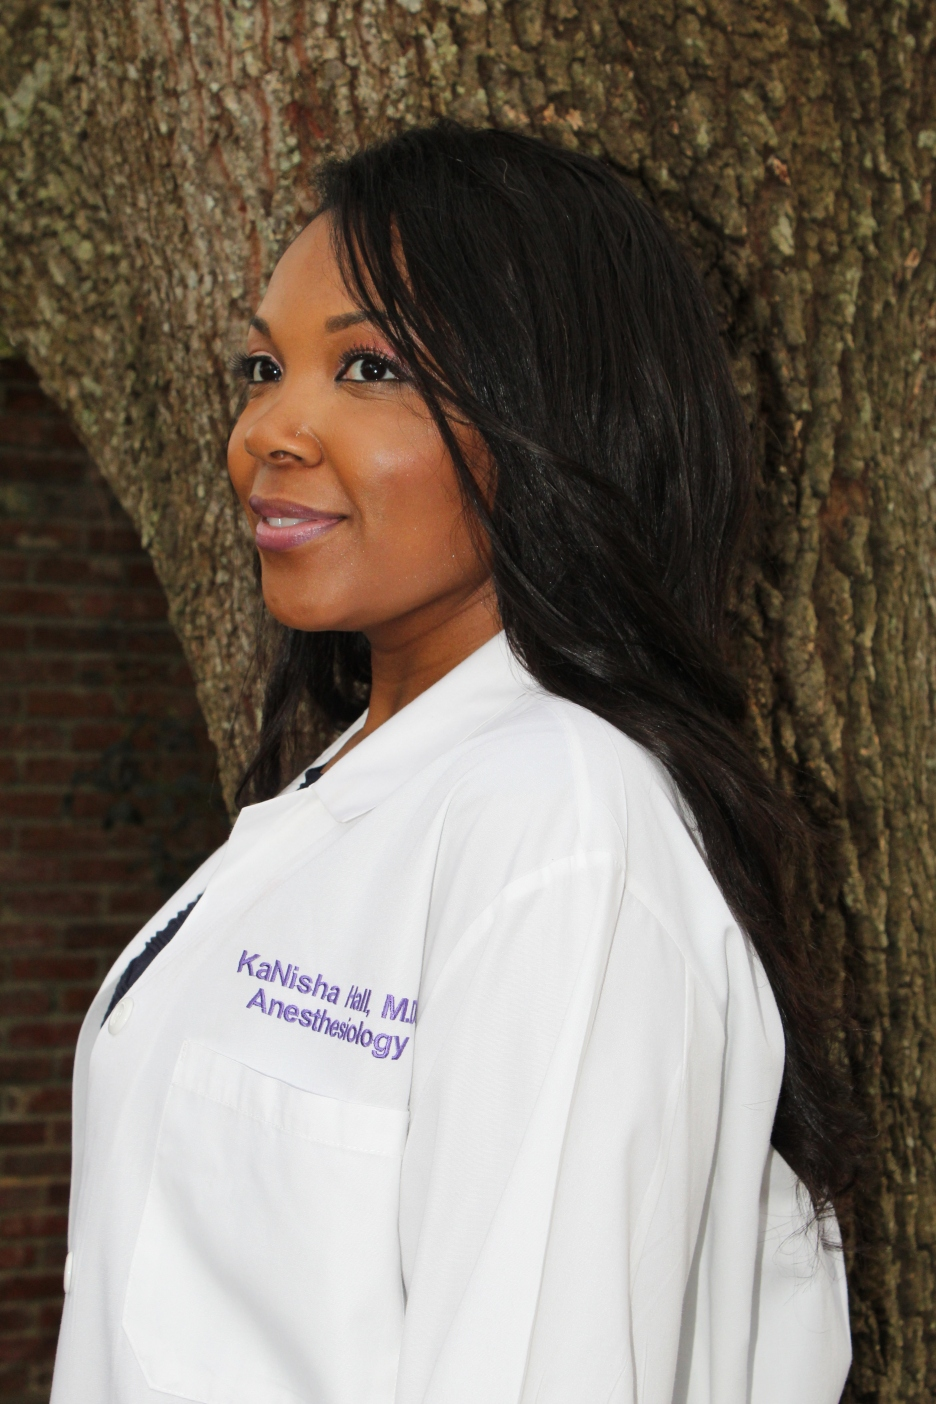 Dr. Kanisha L. Hall